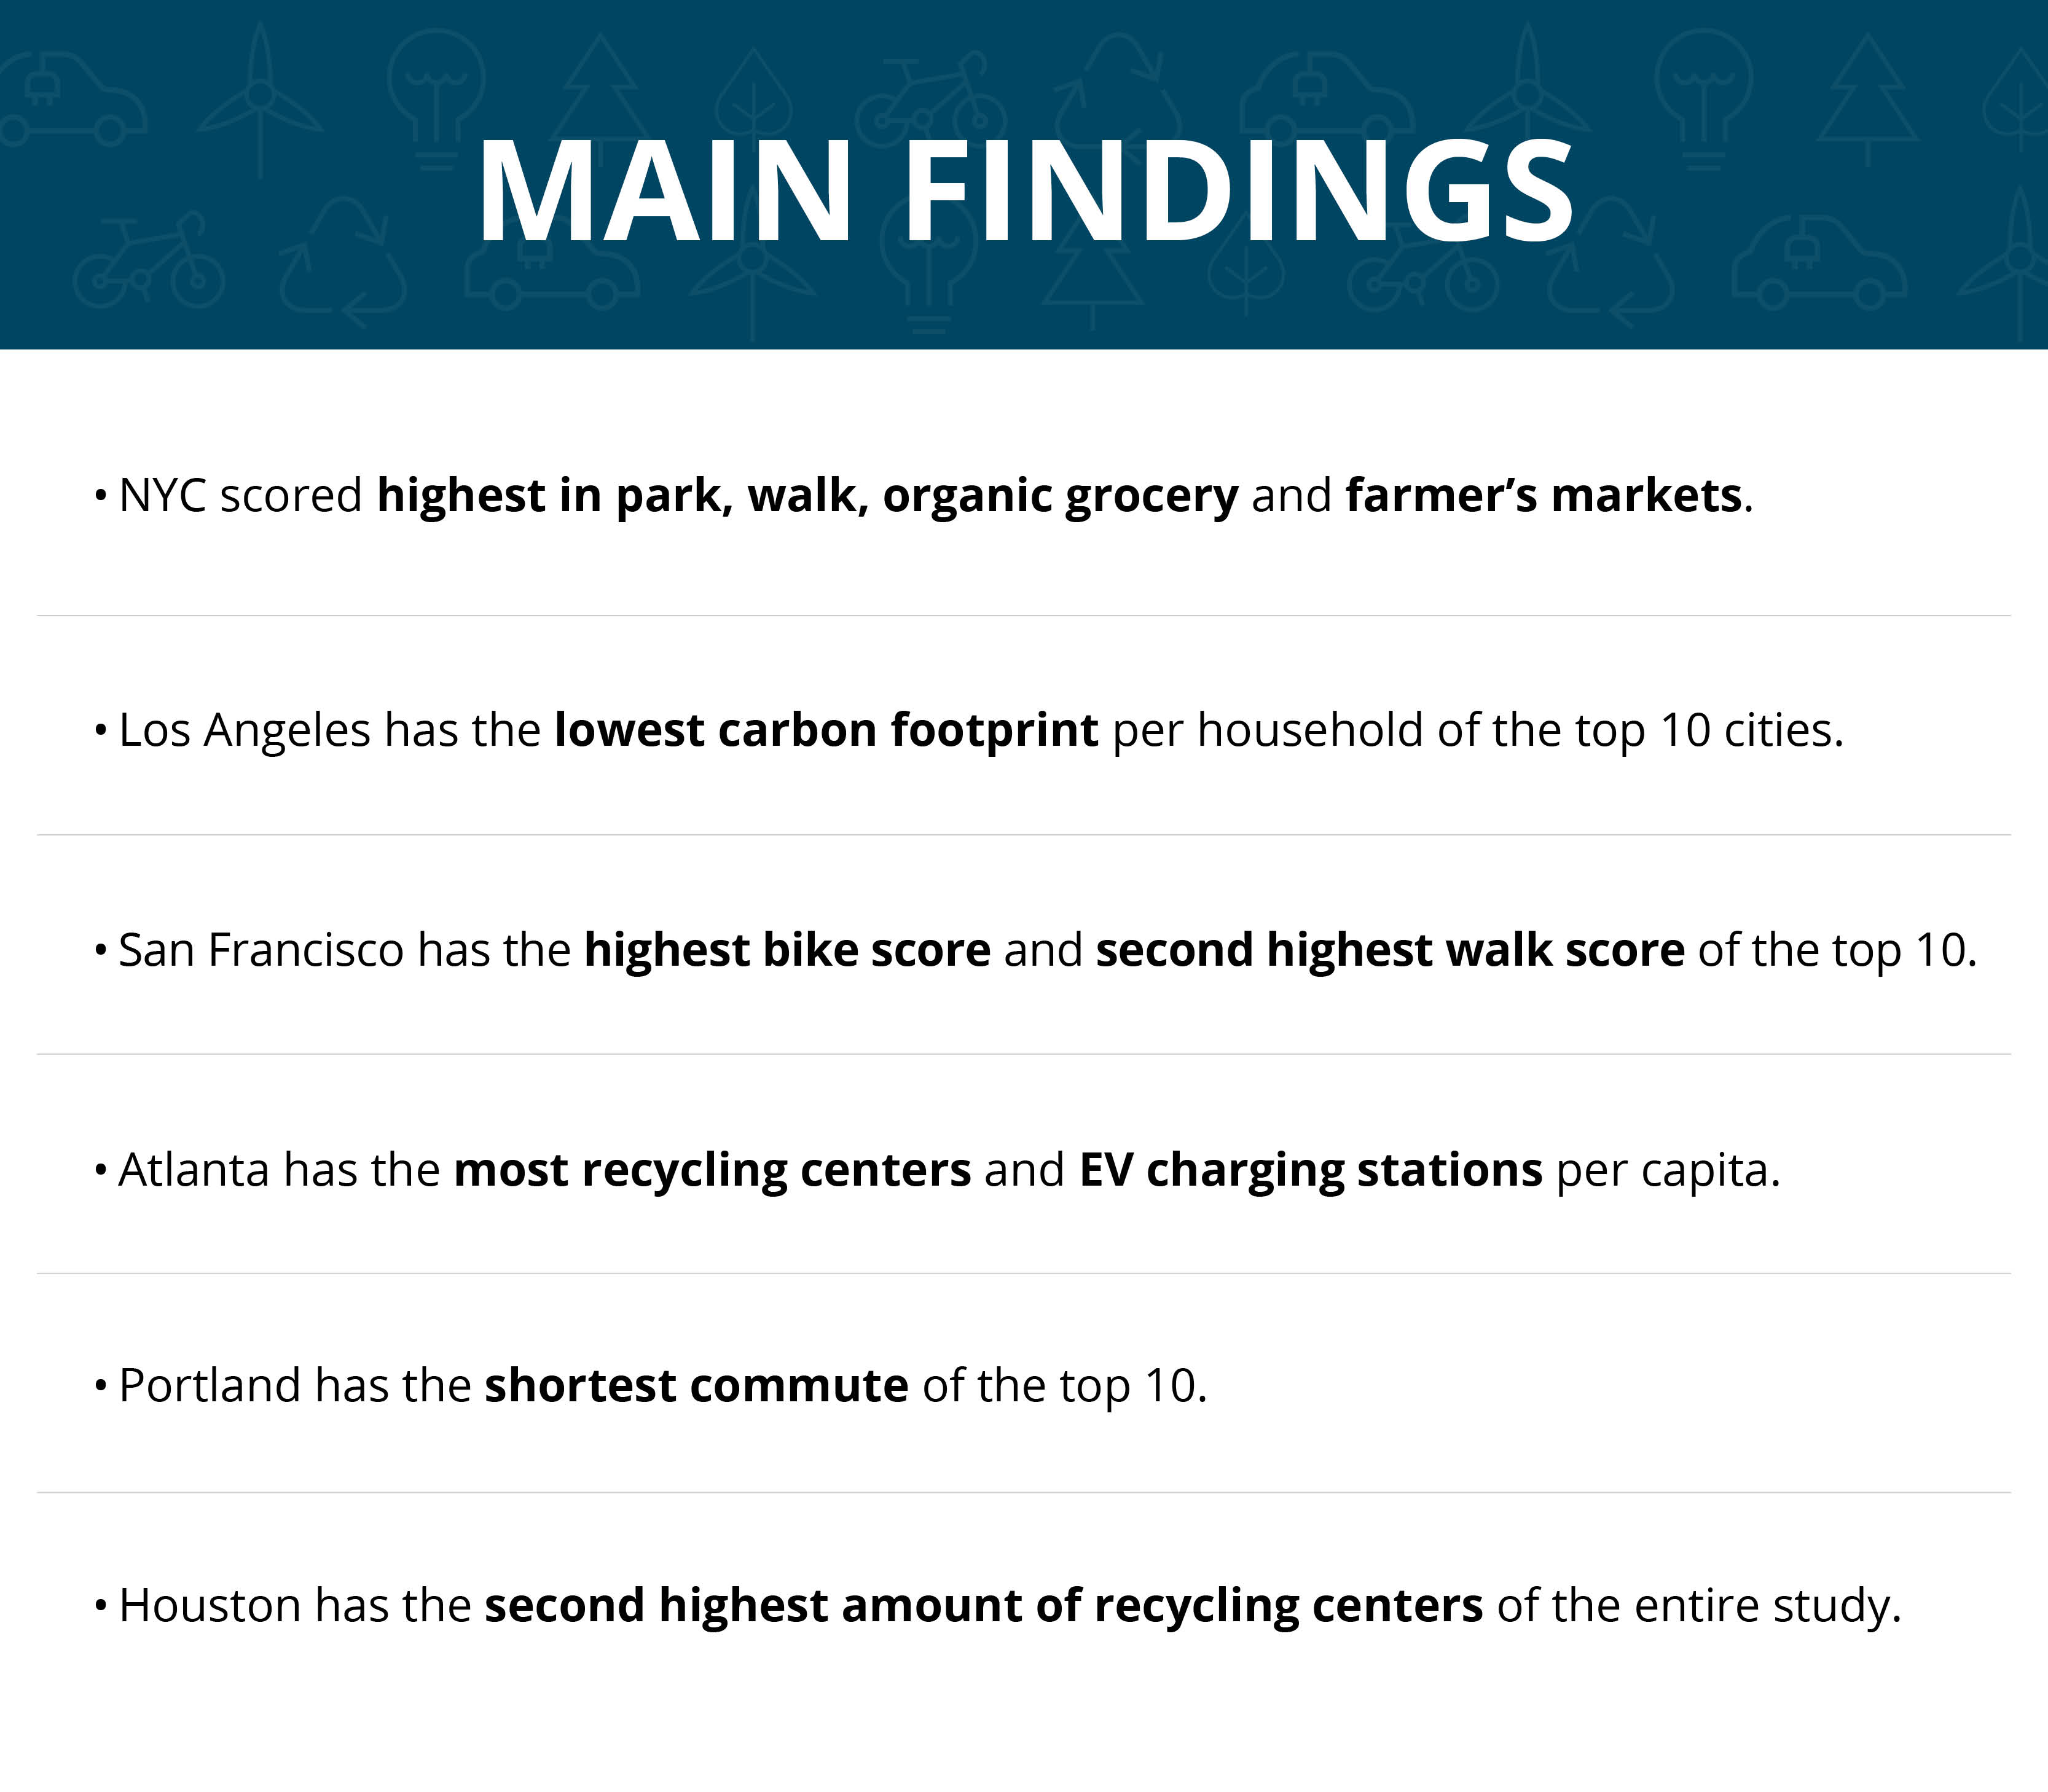 NYC scored highest in park, walk, organic grocery and farmer's markets. Los Angeles has the lowest carbon footprint per household of the top 10 cities. San Francisco has the highest bike score and second highest walk score of the top 10. Atlanta has the most recycling centers and EV charging stations per capita. Portland has the shortest commute of the top 10. Houston has the second highest amount of recycling centers of the entire study.